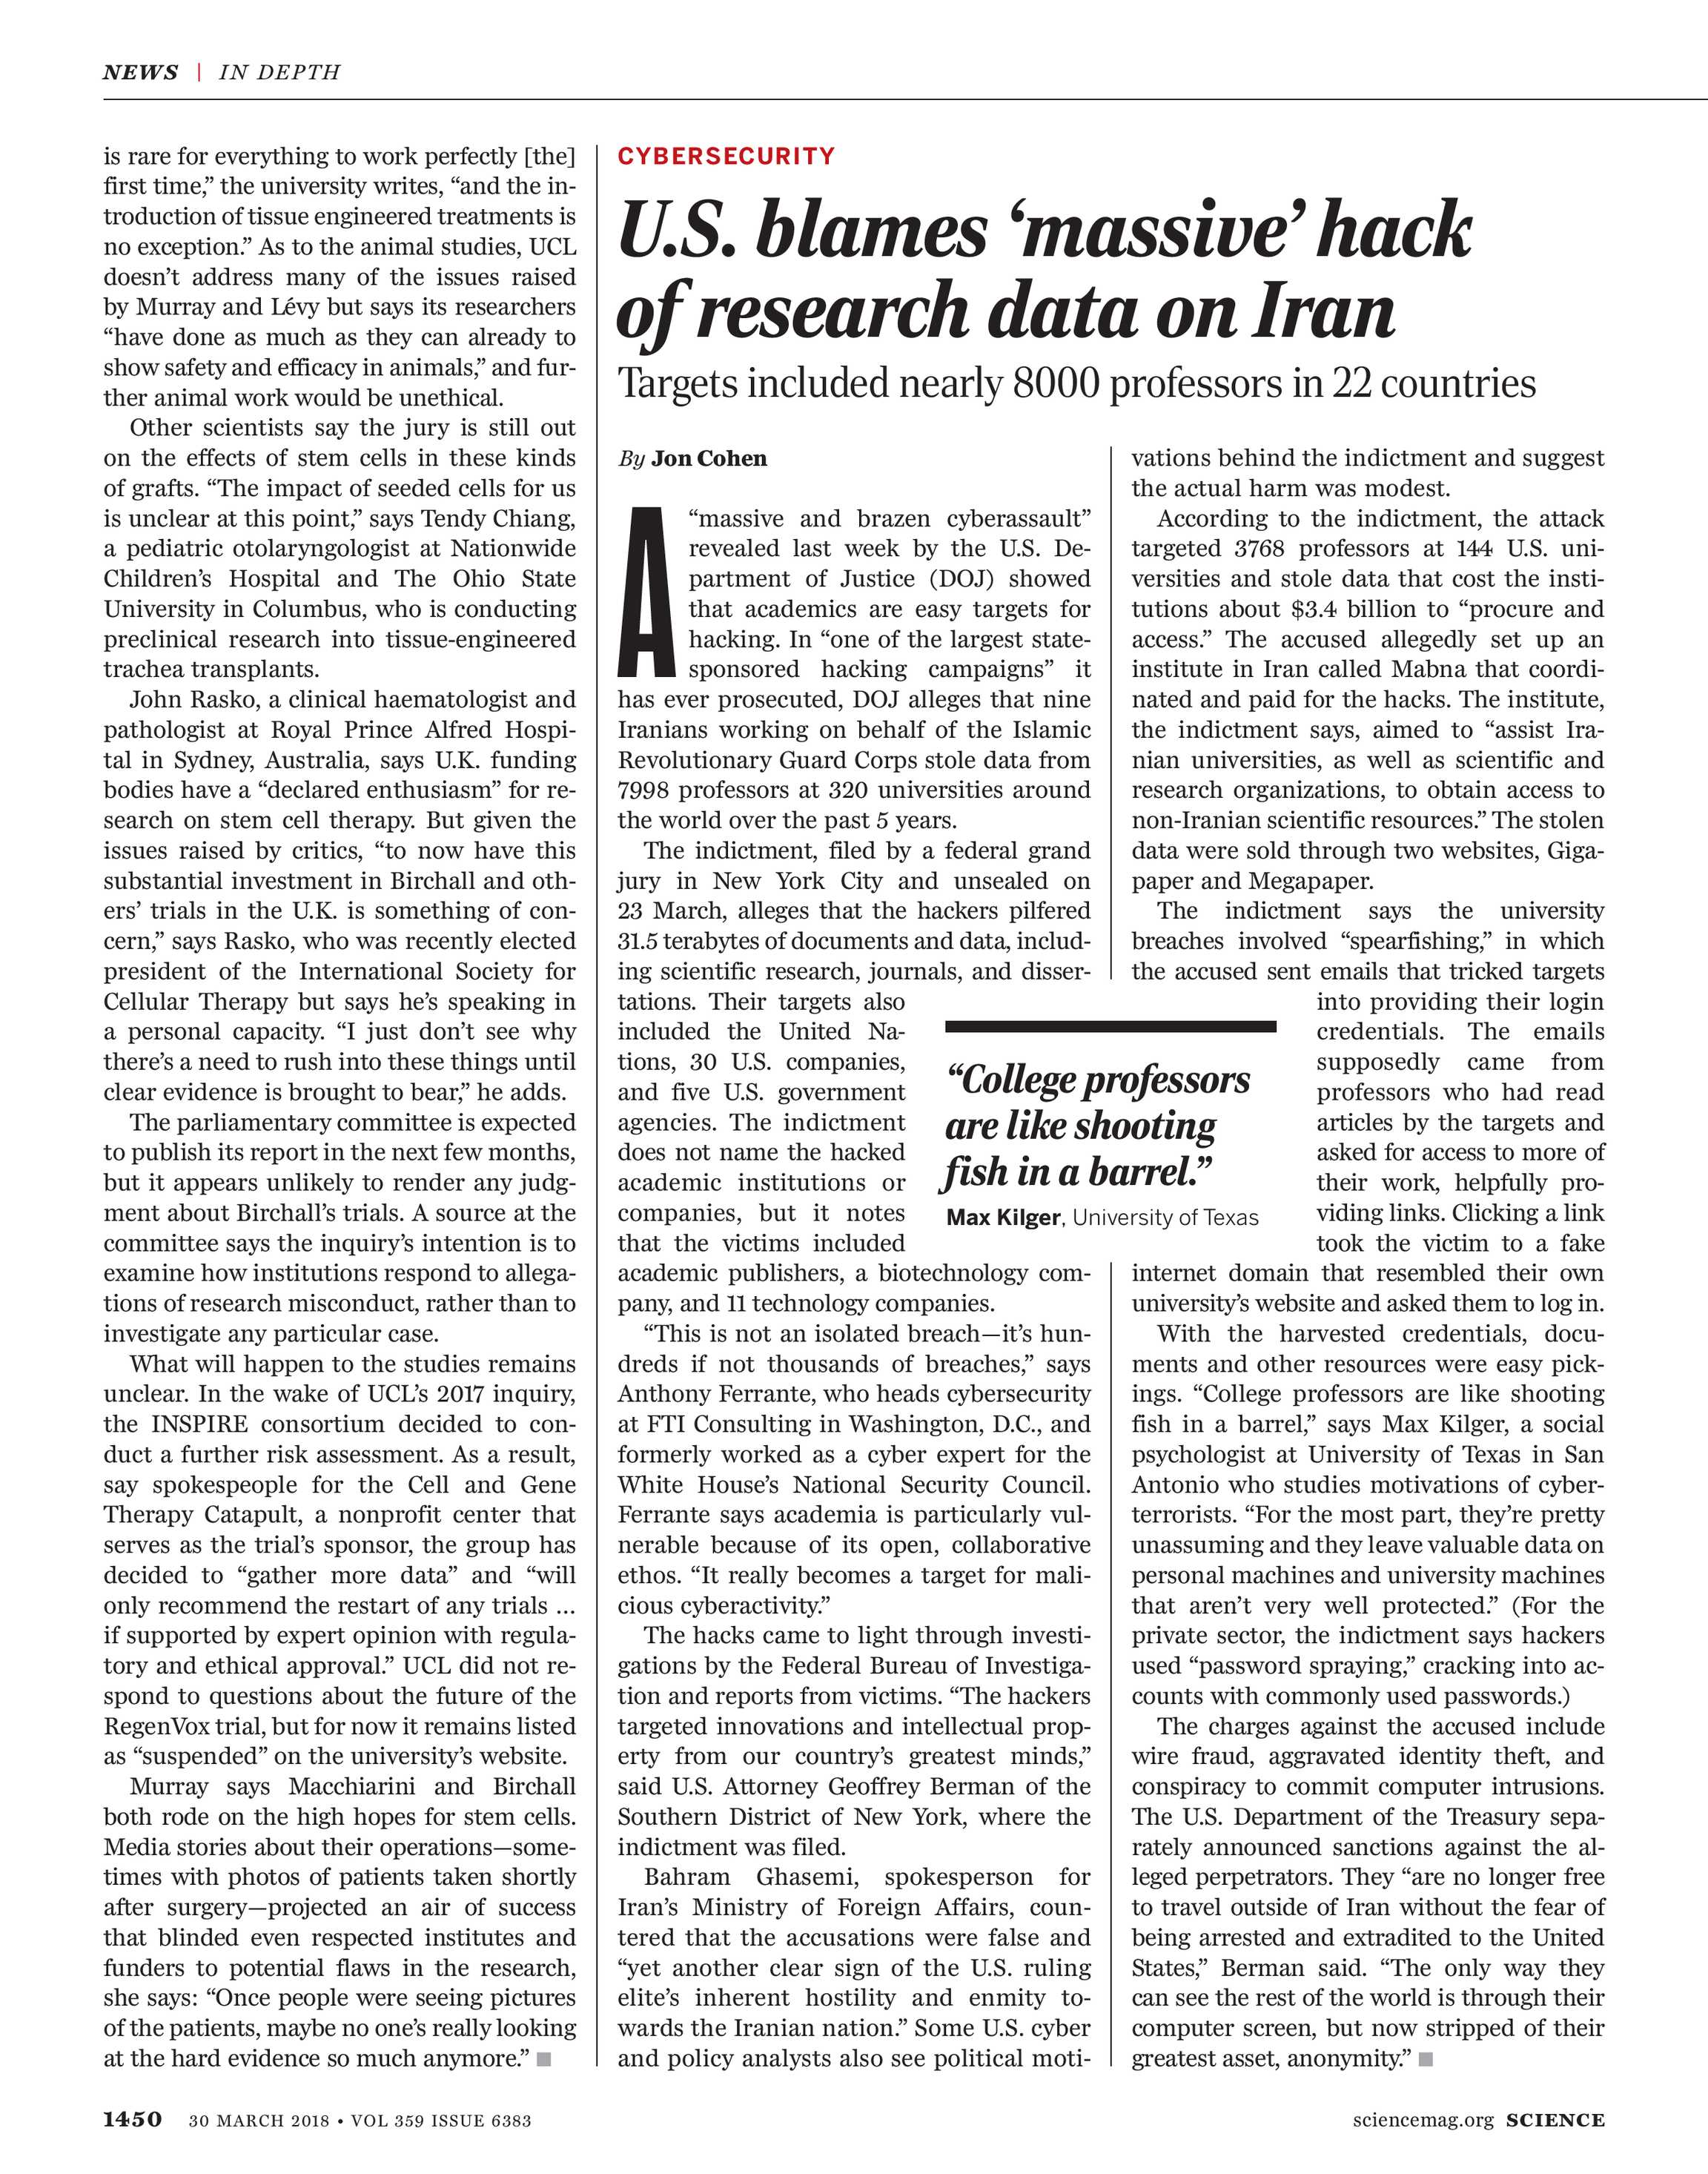 State Journal Gives More Ink To Iran >> Science Magazine March 30 2018 Page 1450